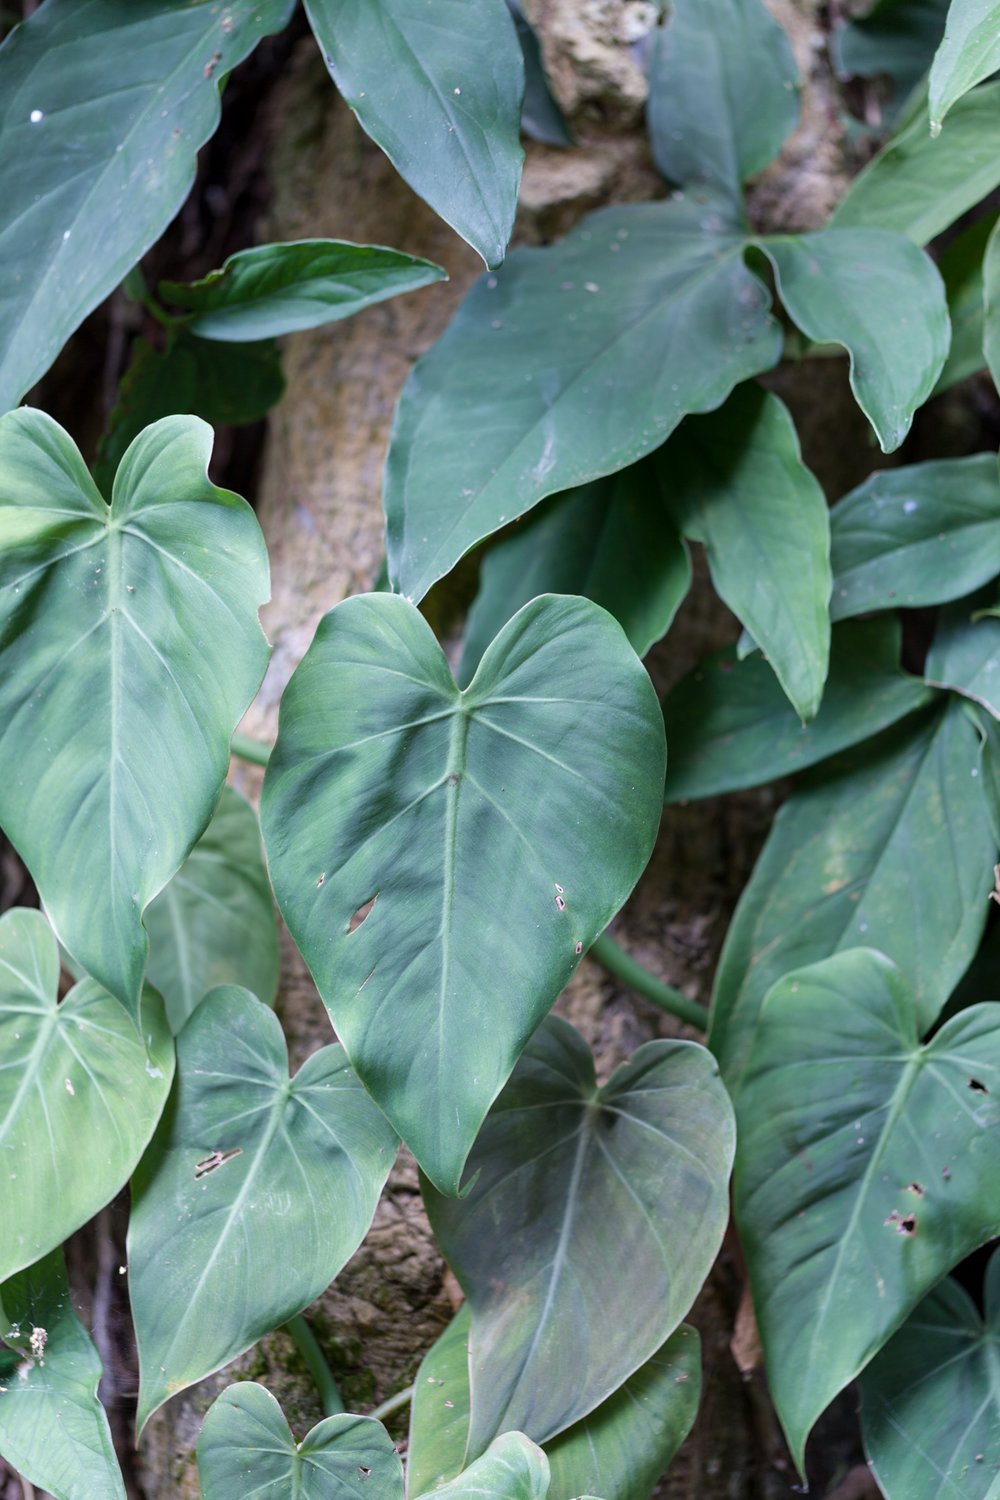 philodendron-Costa-Rica.jpg